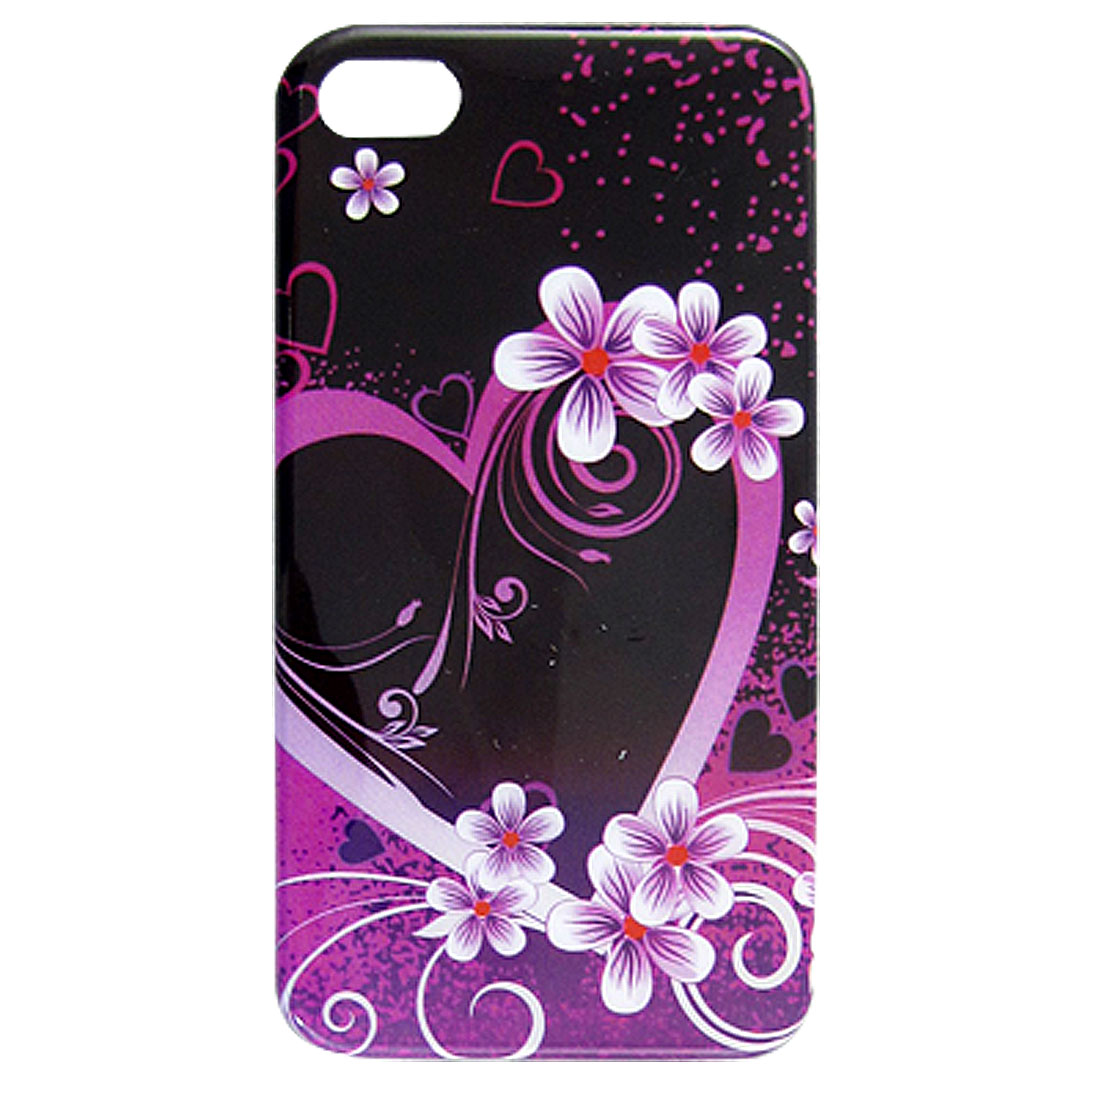 Fuchsia Heart Flower Print IMD Hard Plastic Back Case for iPhone 4 4G 4S